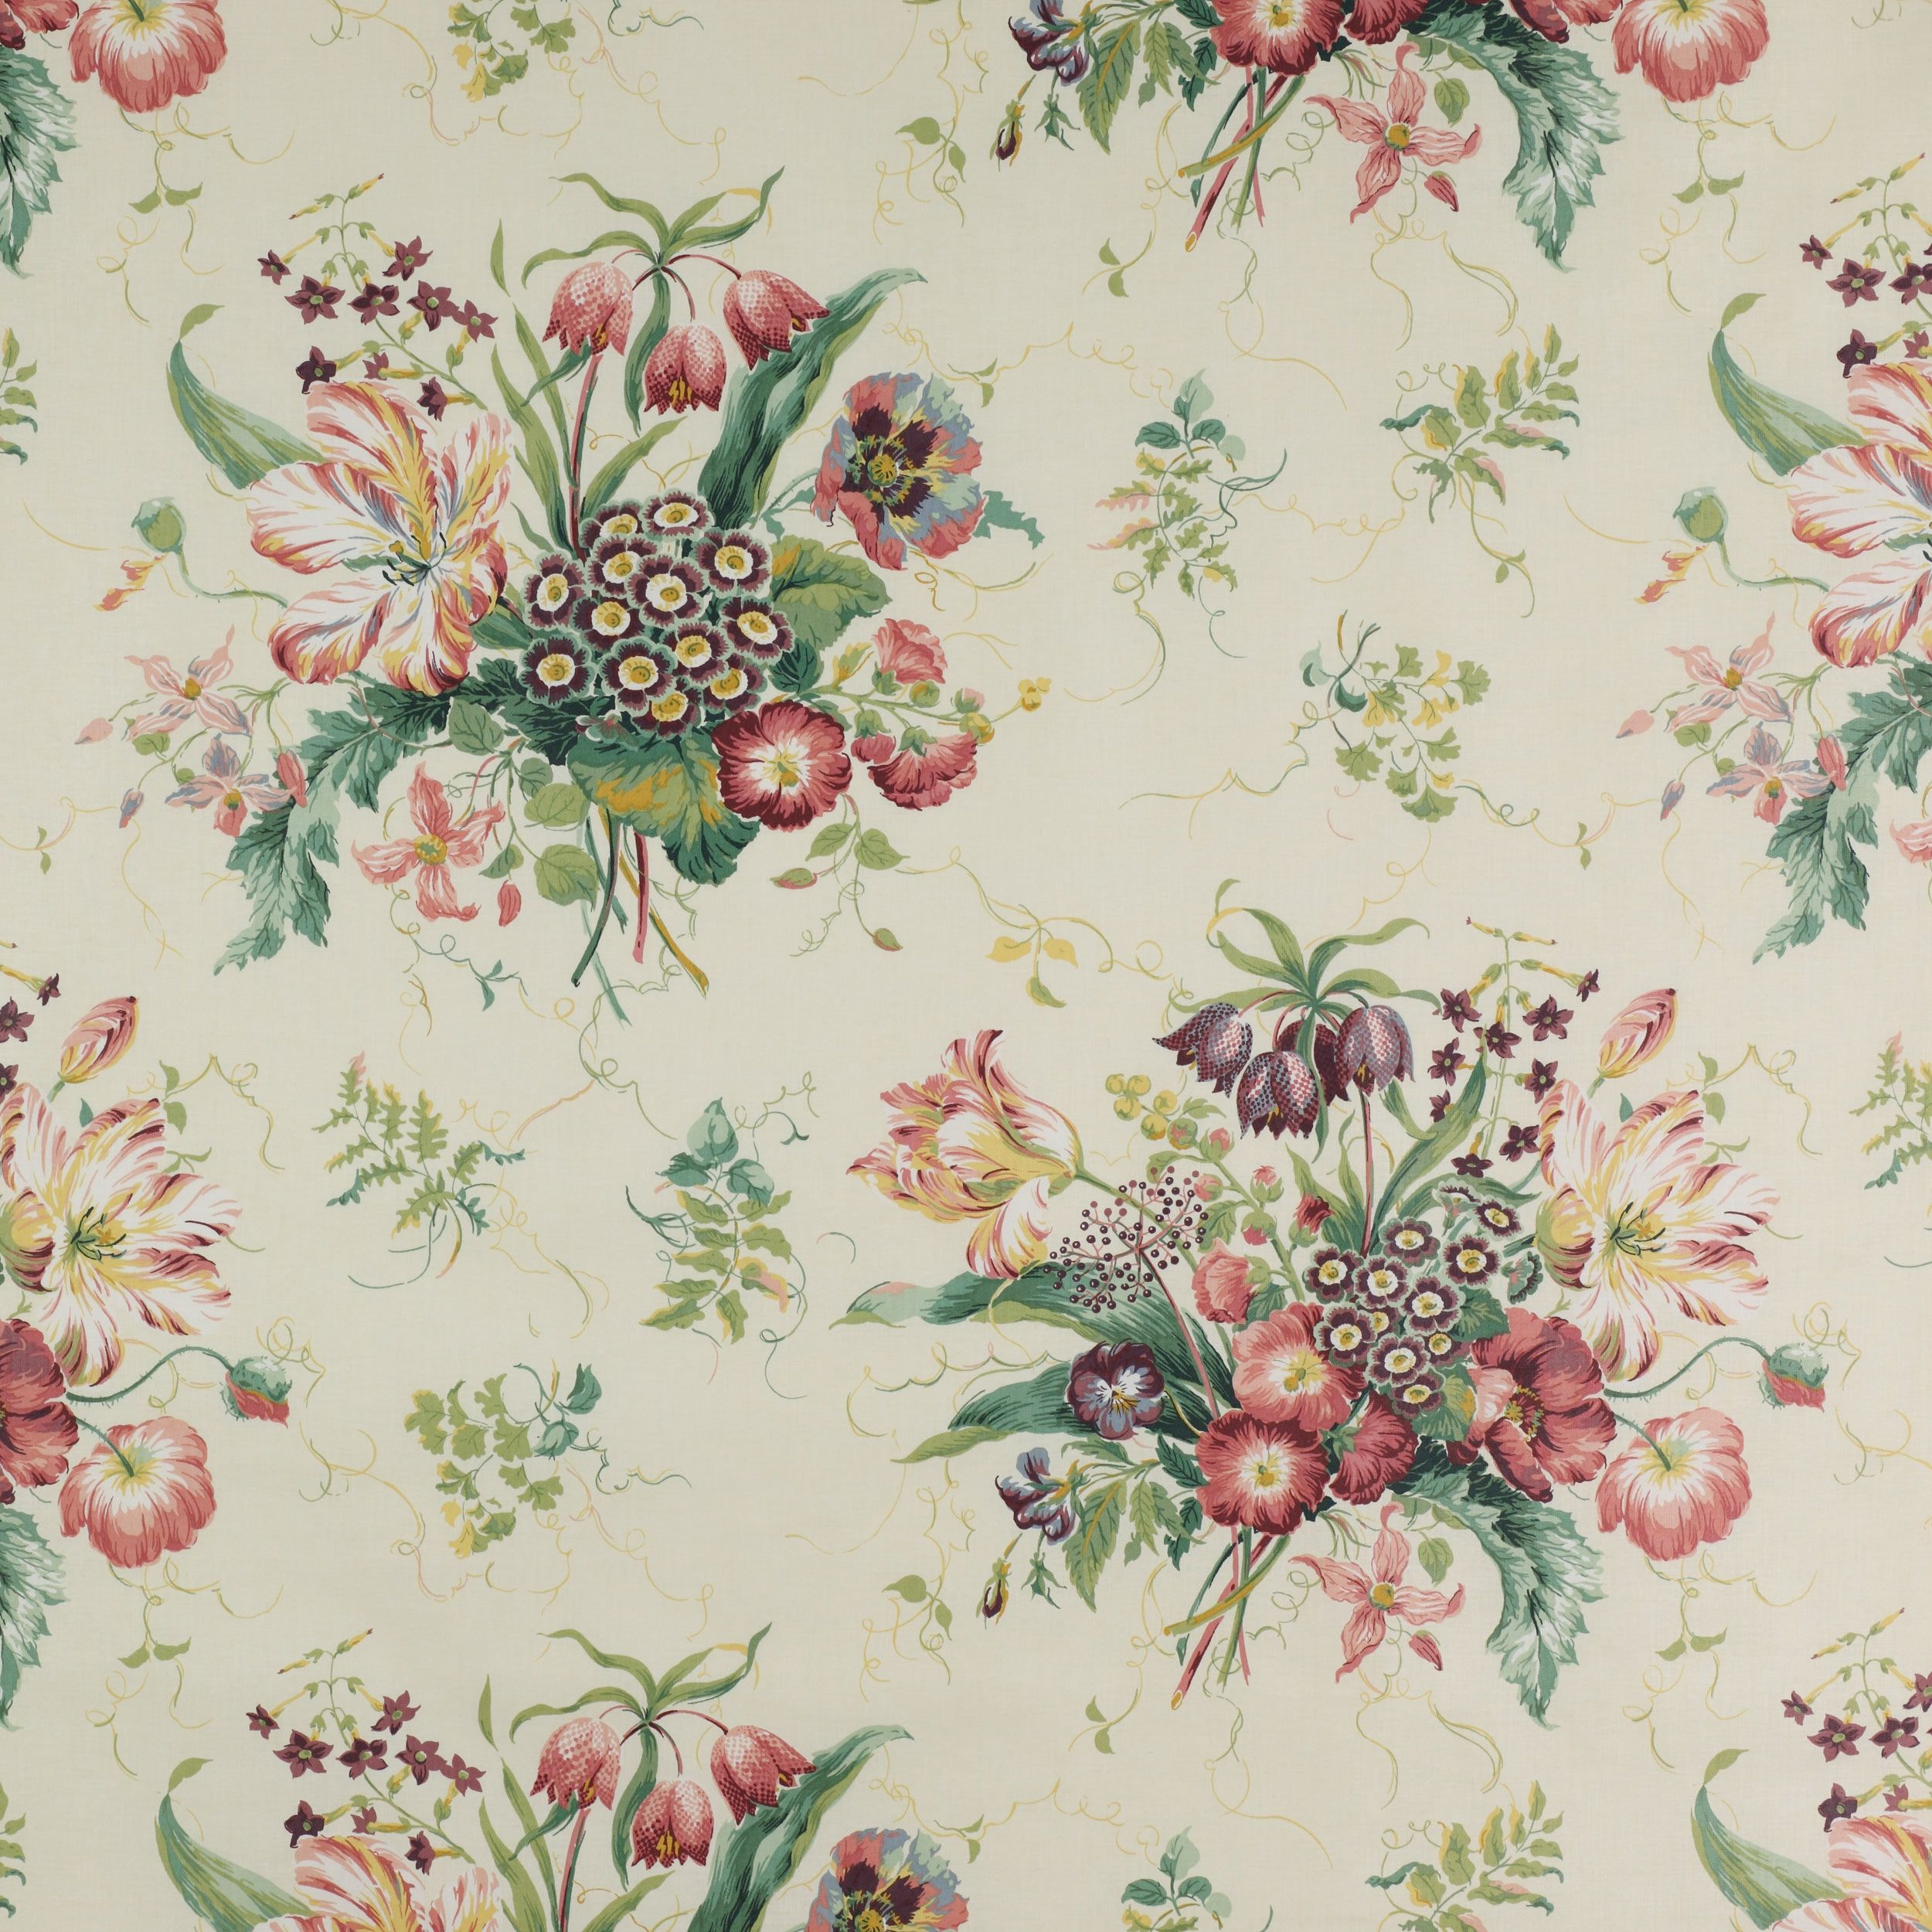 Colefax And Fowler S Alicia Colefaxandfowler Floral Textile